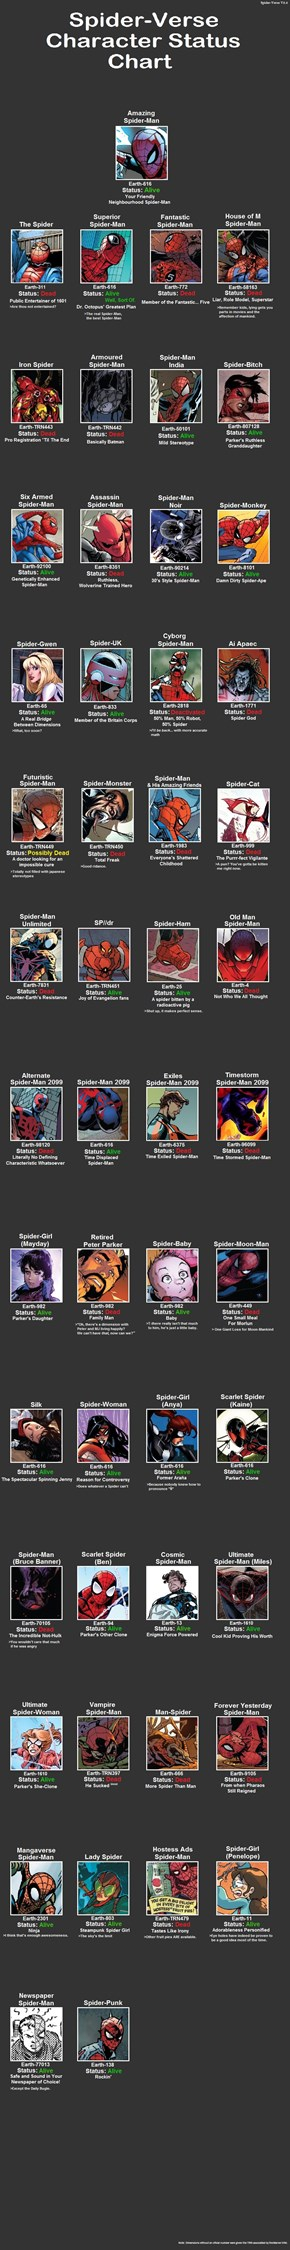 The Status of The Spider-Verse